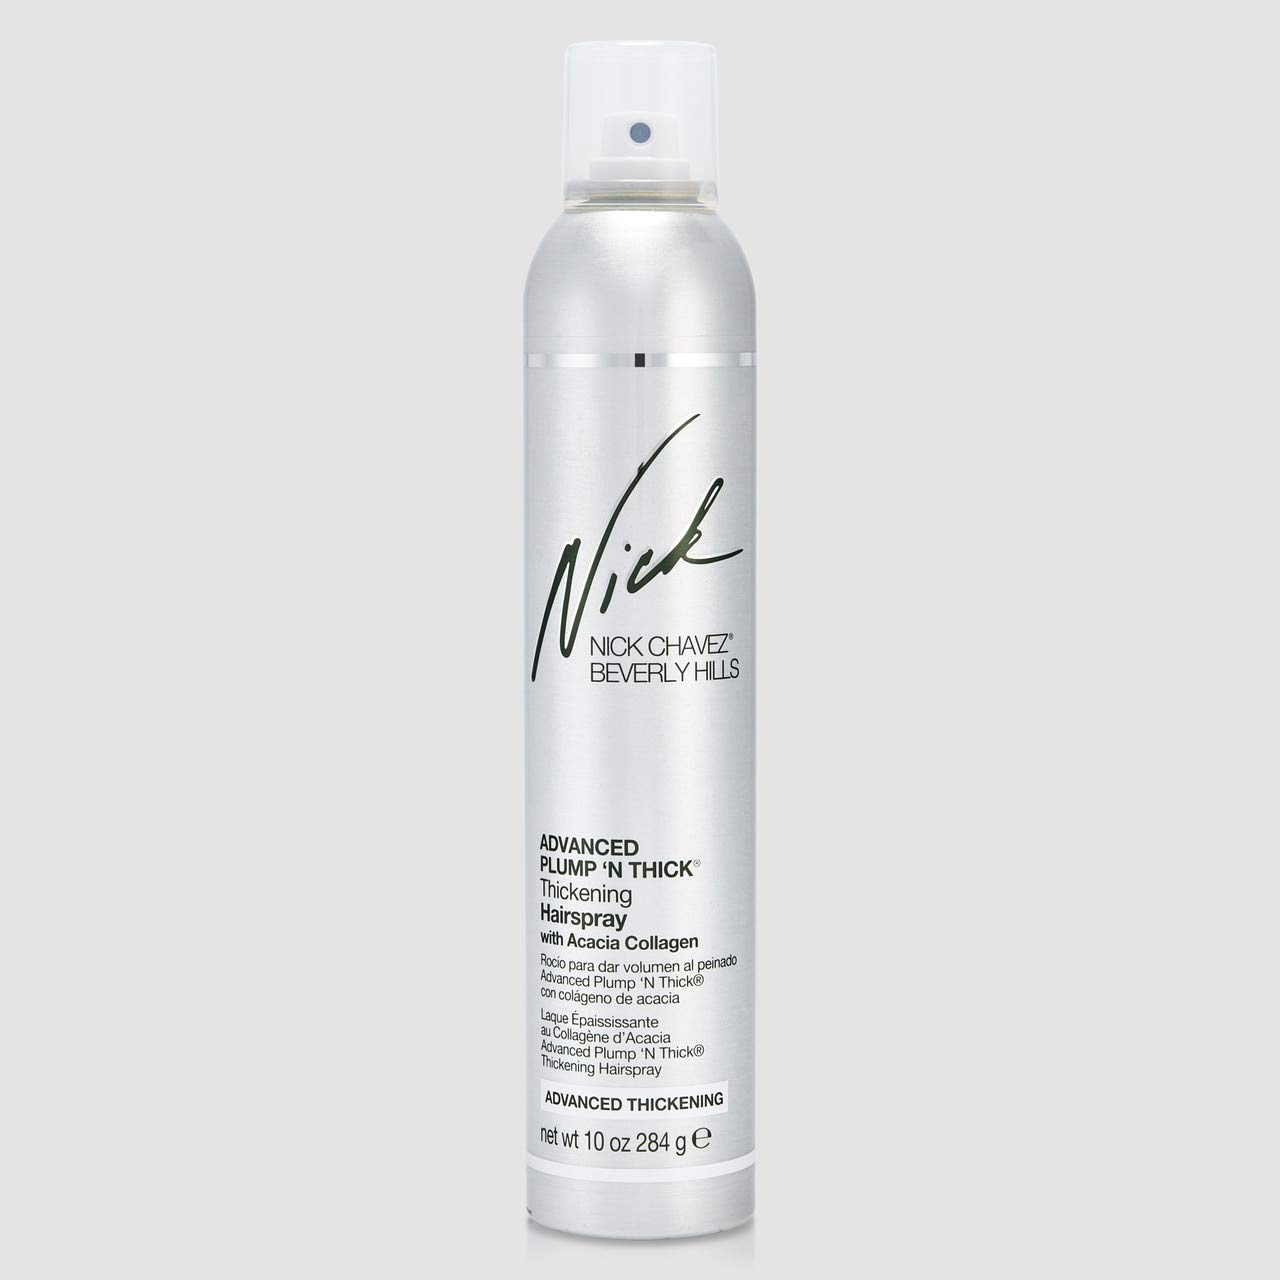 Nick Chavez Beverly Hills Advanced Plump 'N Thick Thickening Hairspray - Professional Hair Thickener For All Hair Types - Increase Hair Volume And Strengthen Hair - 10 Fl Oz.